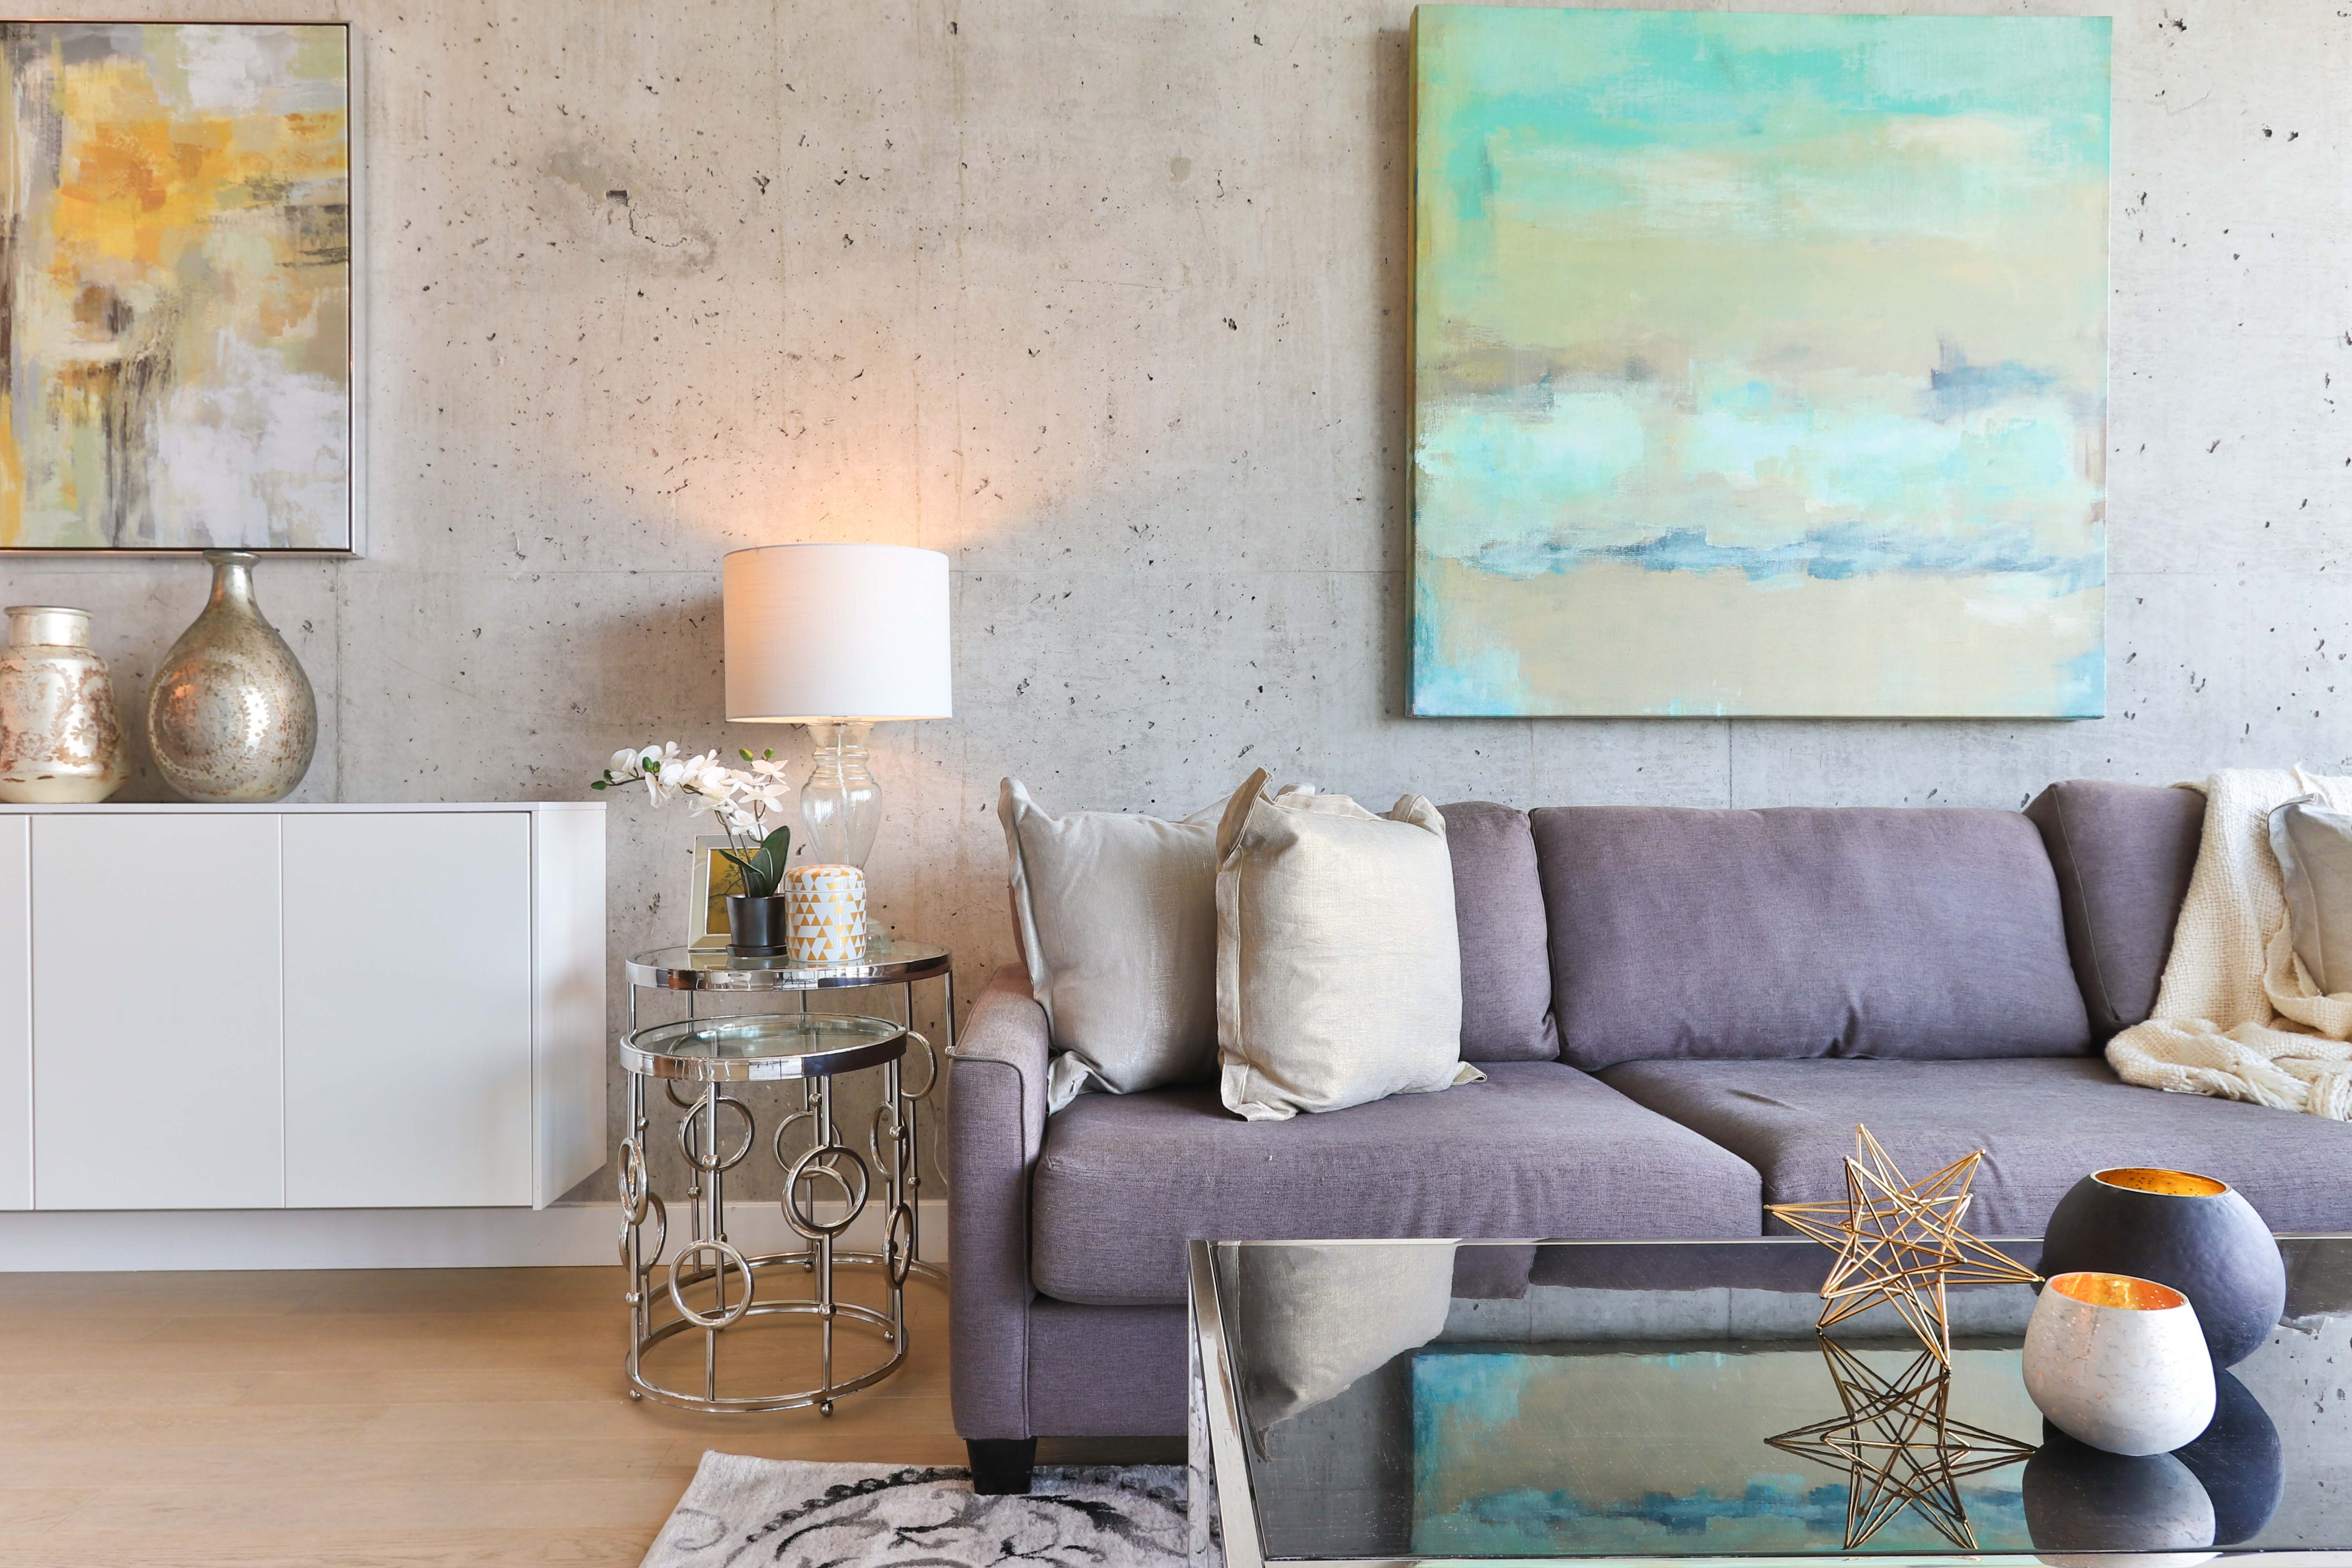 Lighting done right: How to sensitively light your home